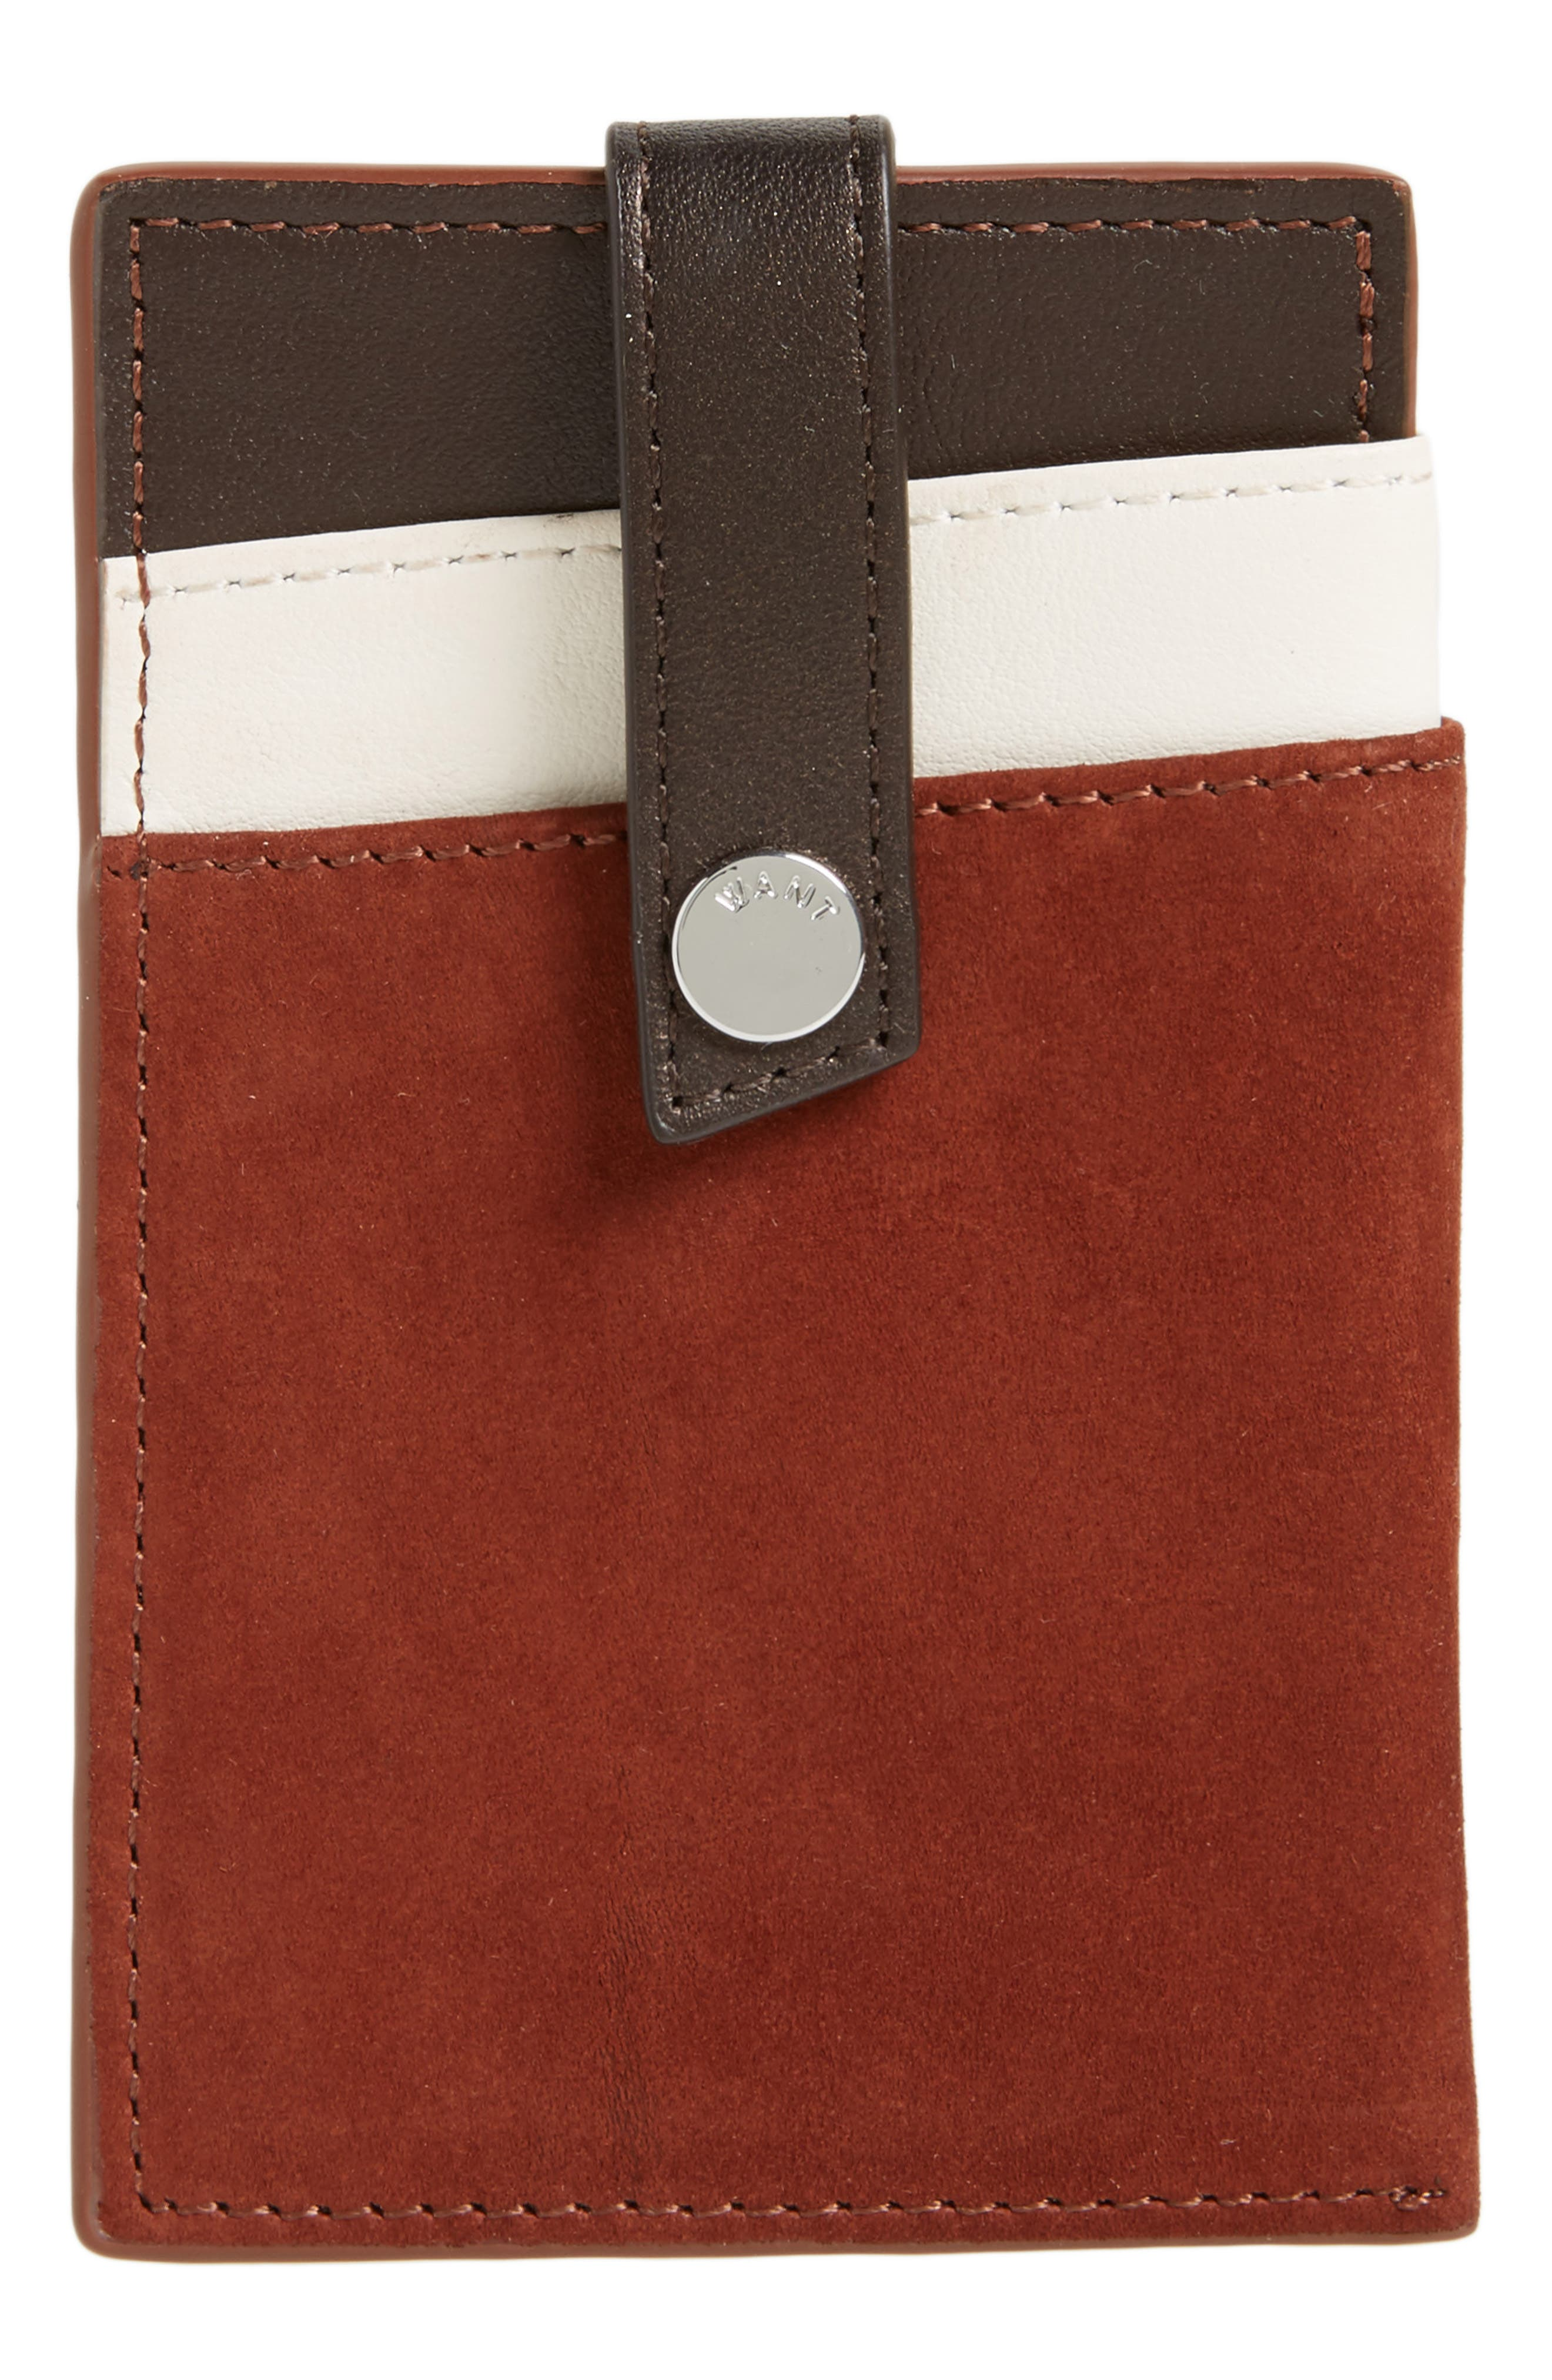 Main Image - WANT LES ESSENTIELS Kennedy Leather Money Clip Card Case